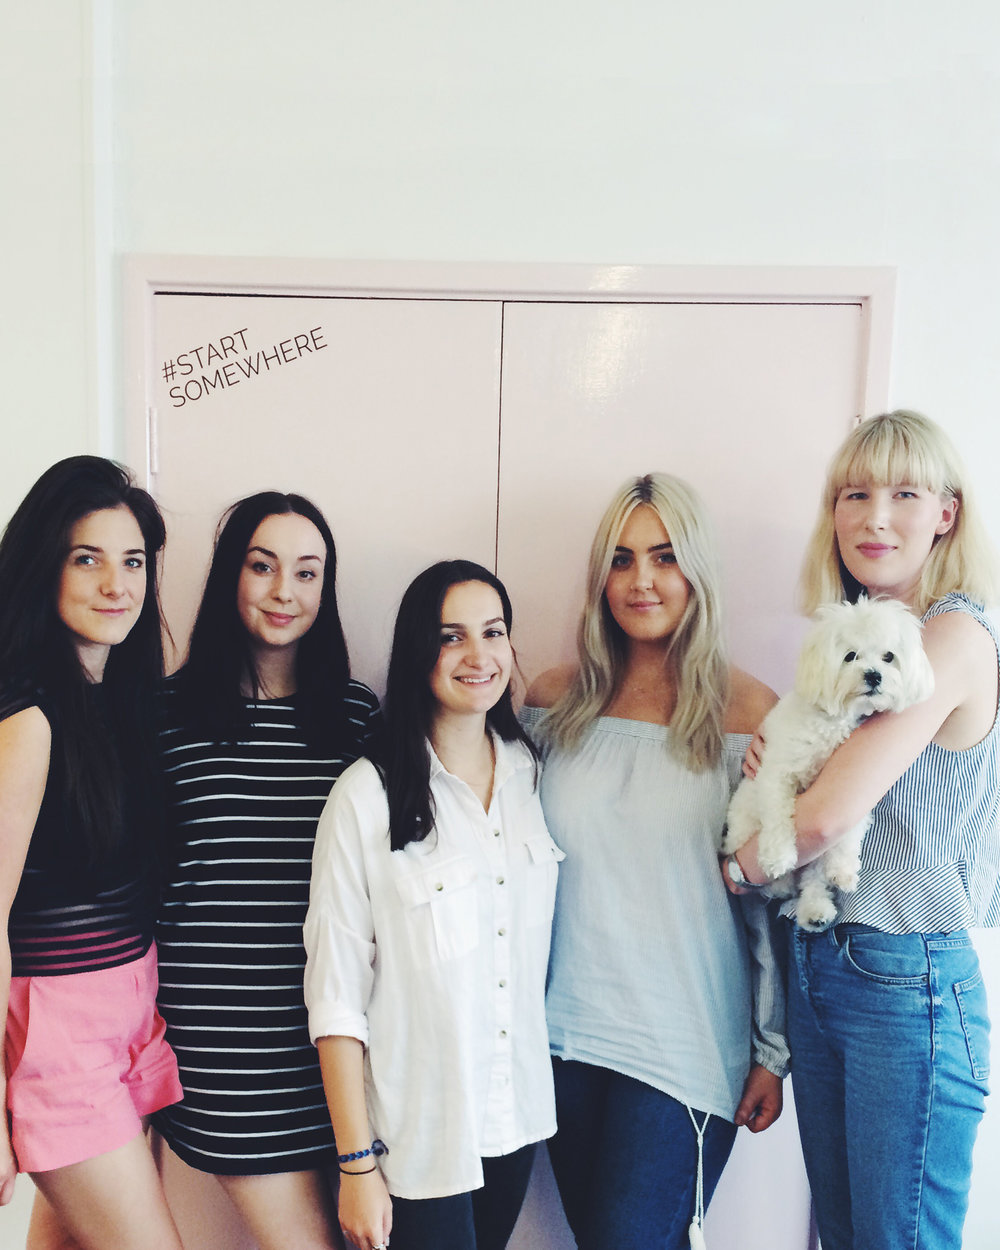 london-fashion-agency-team.jpg